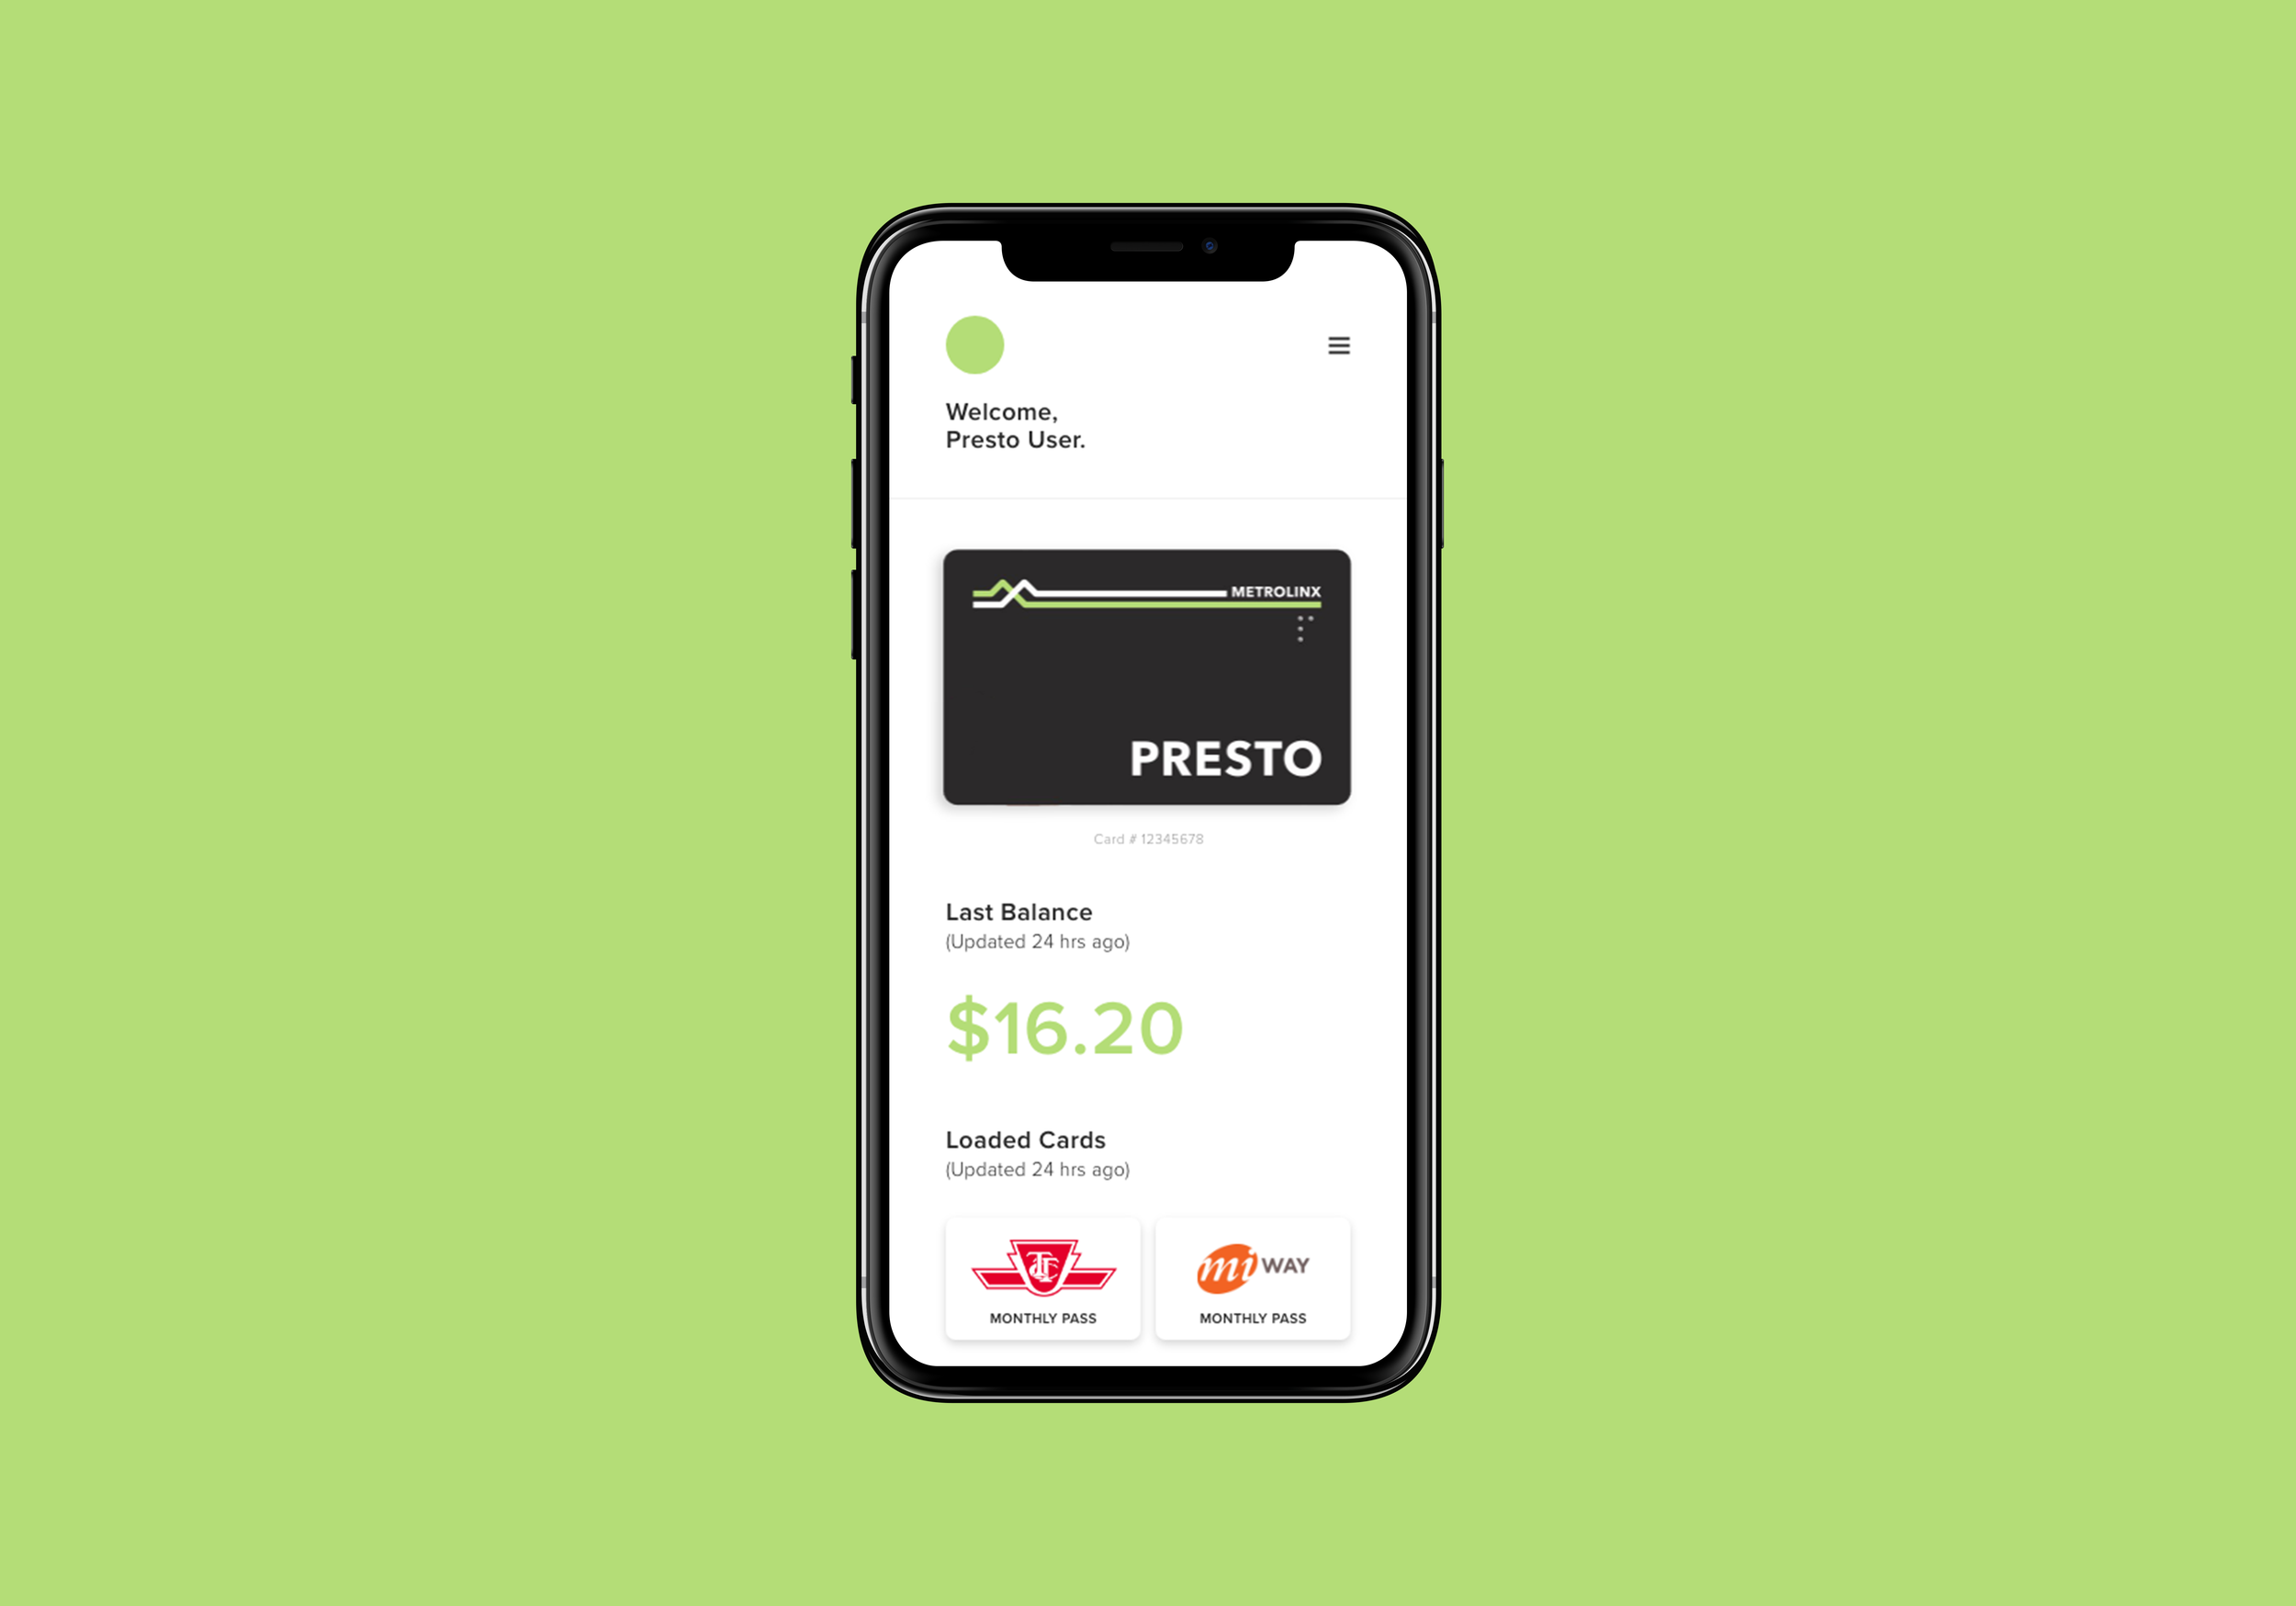 Presto App - With Apple Pay integration, you can go anywhere.